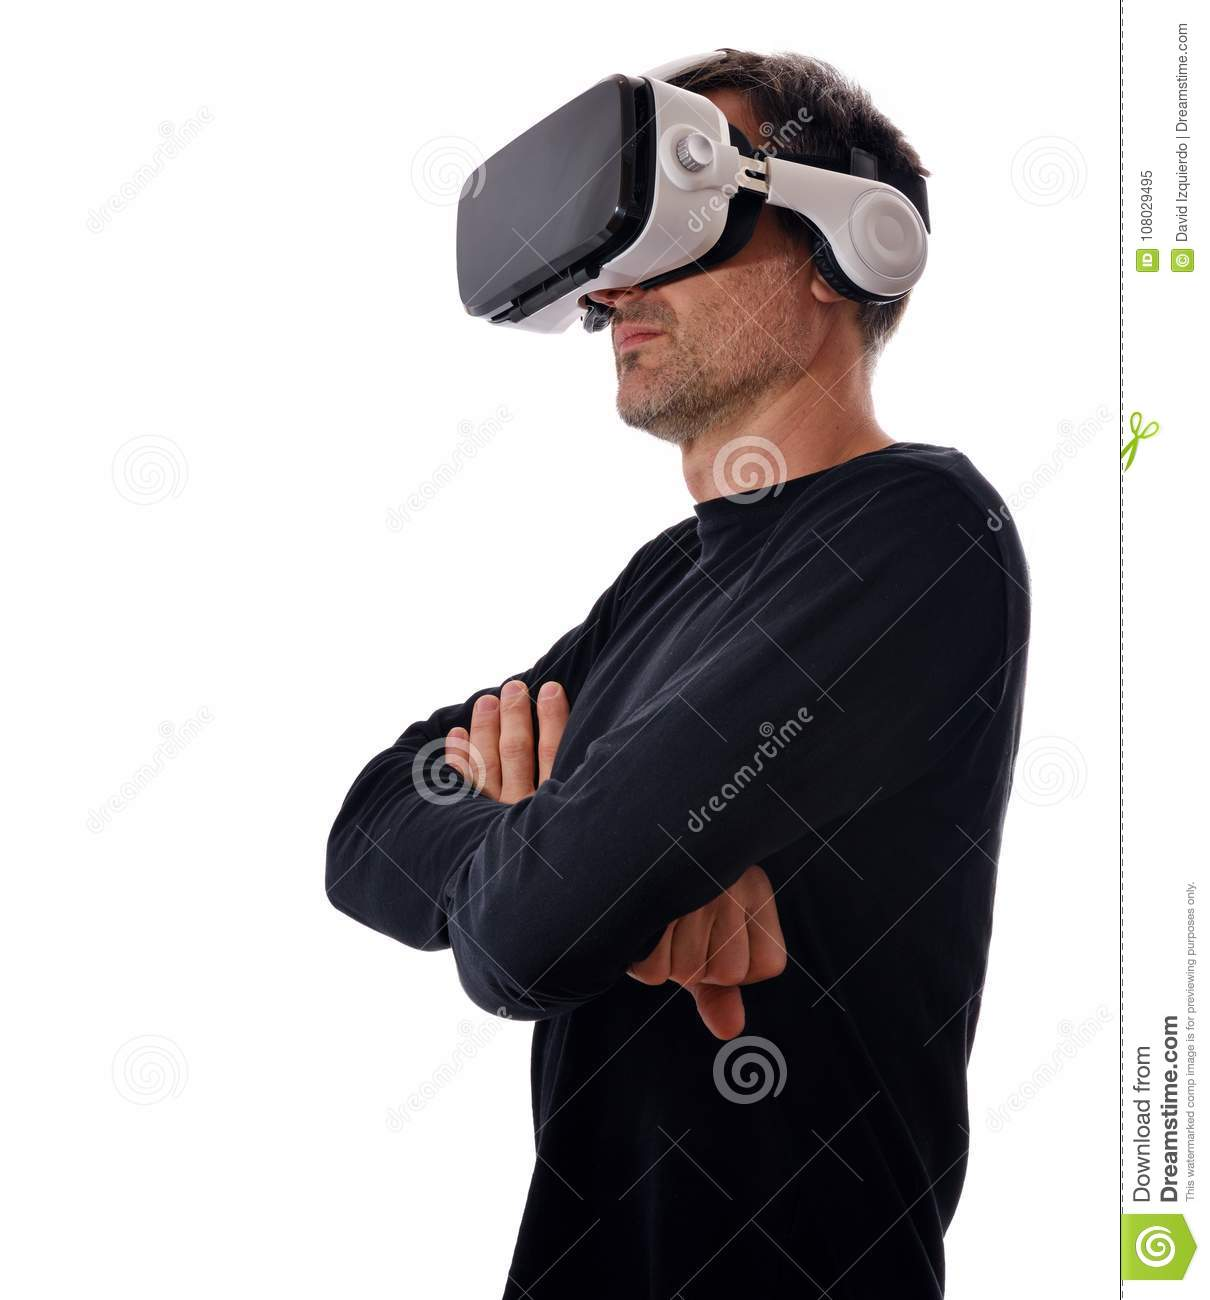 Serious man with virtual reality glasses and arms crossed isolated